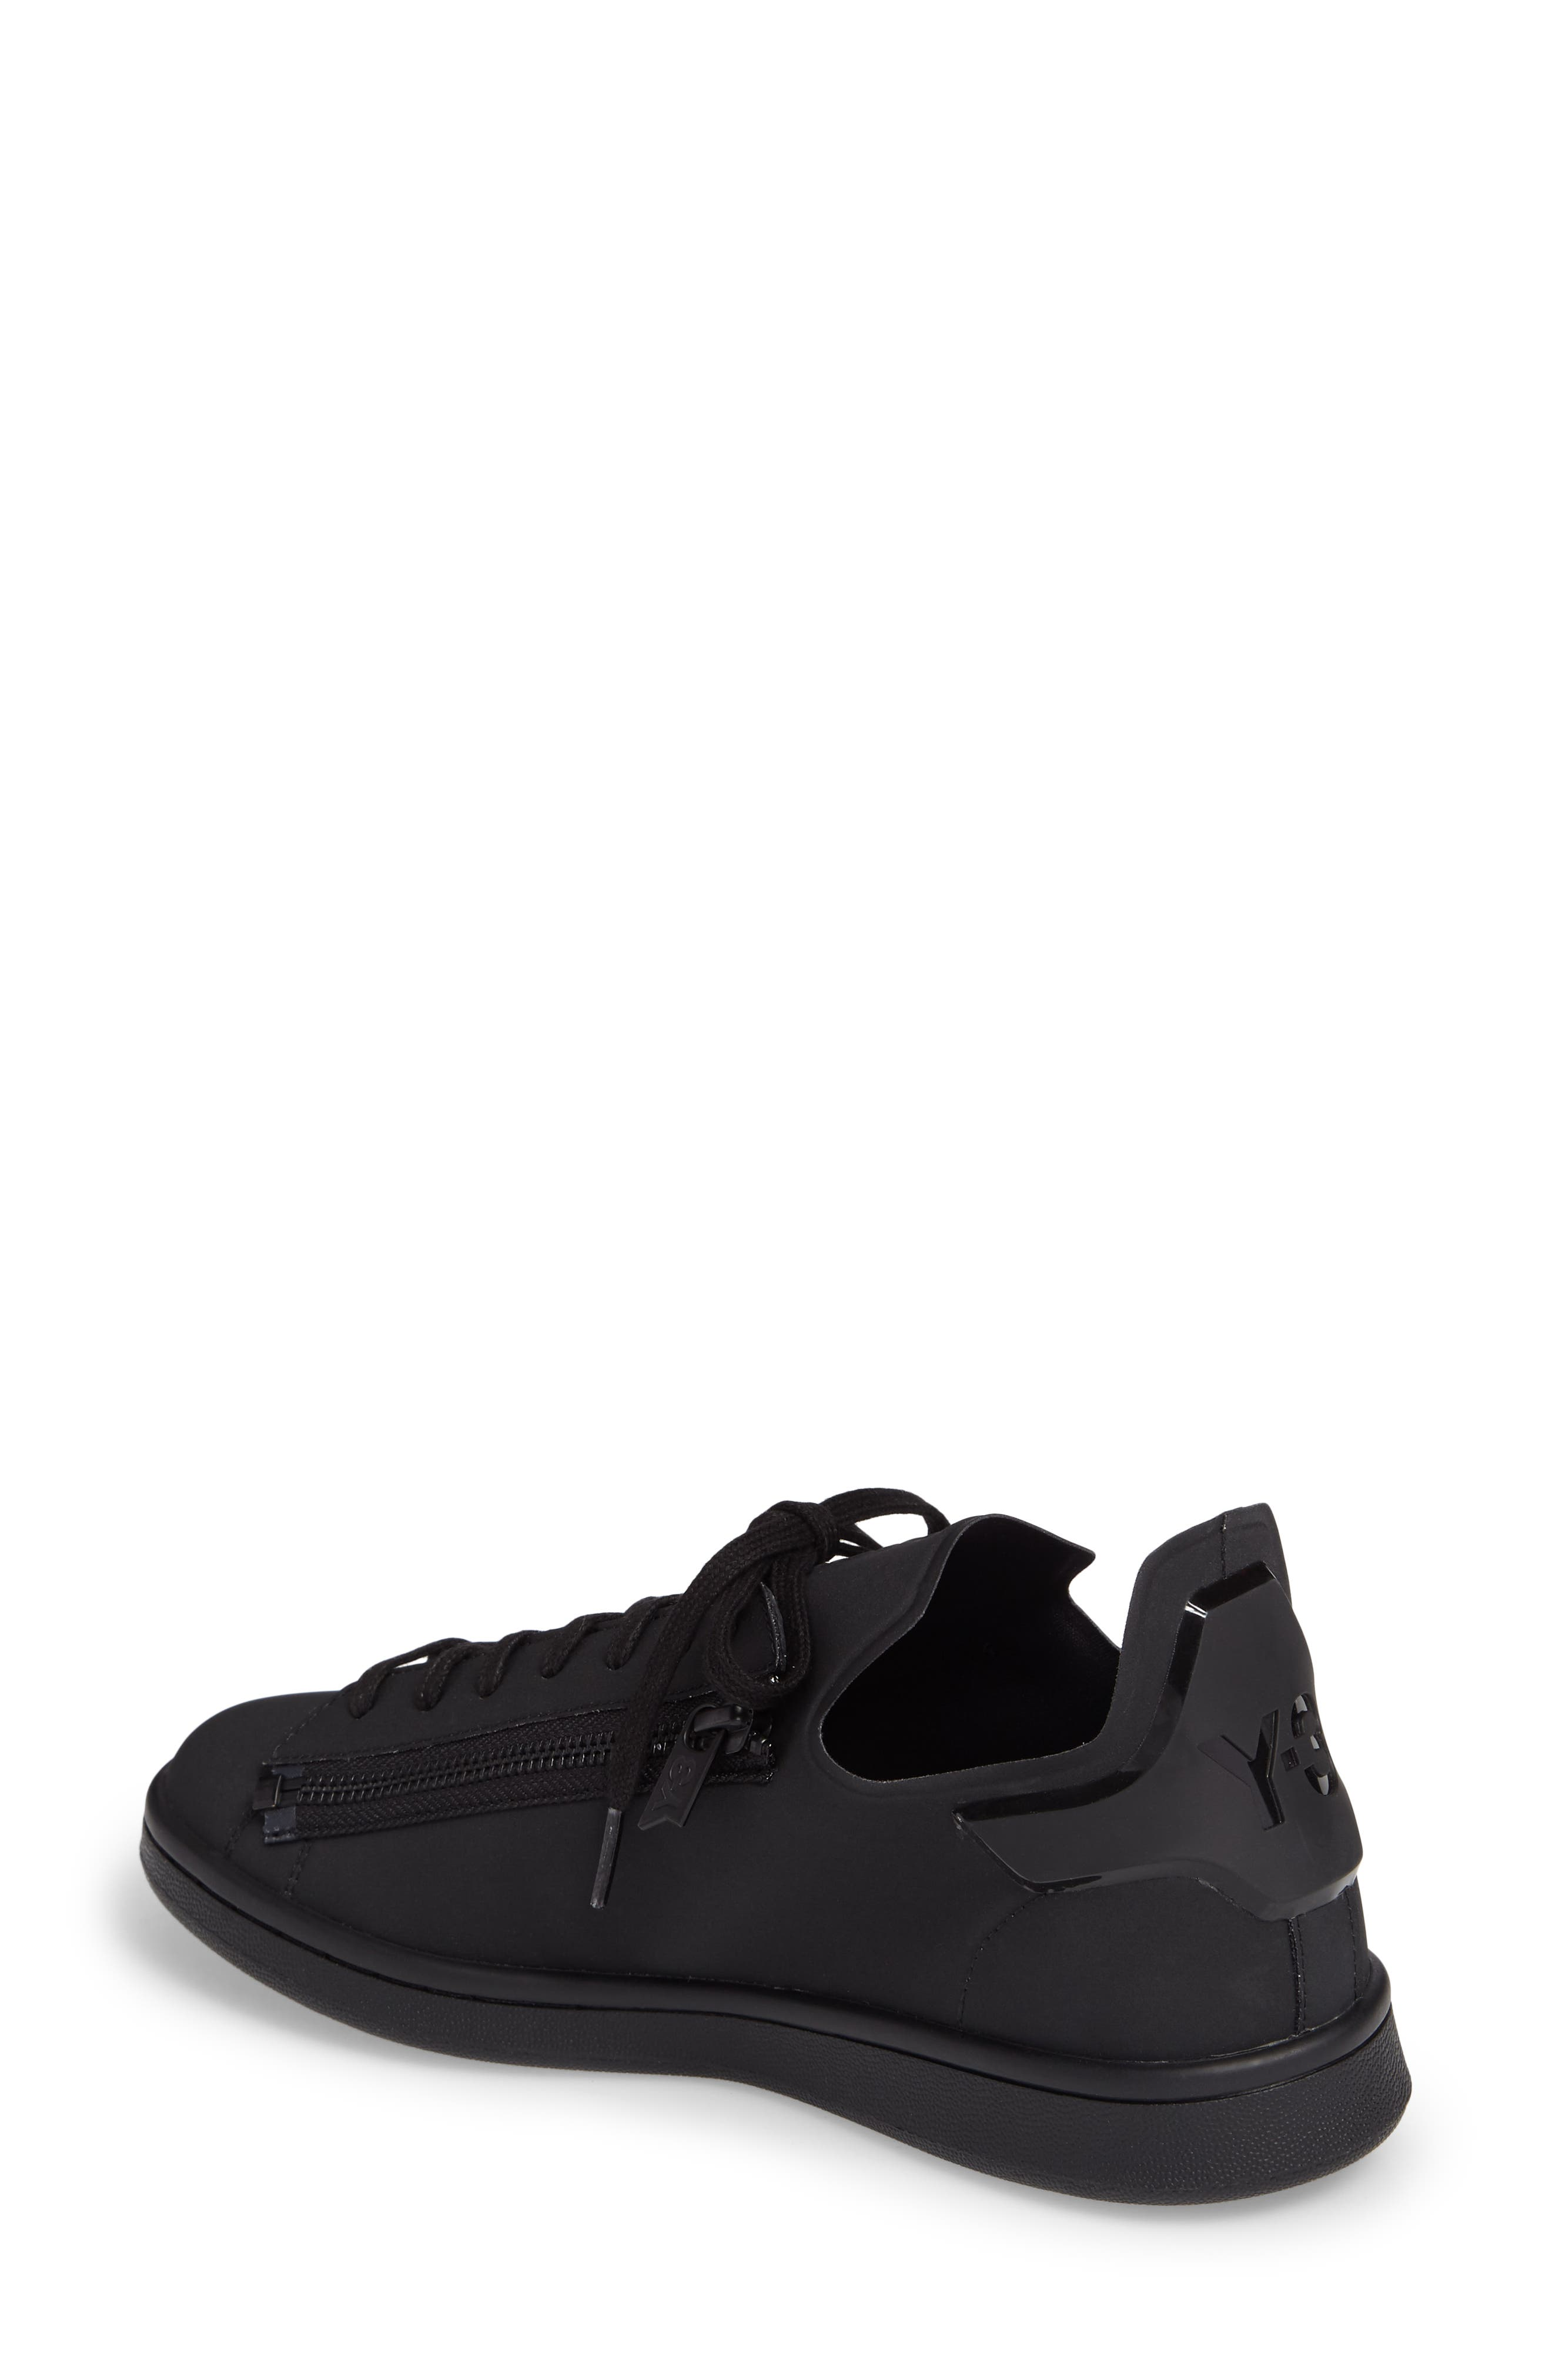 Stan Low Top Sneaker,                             Alternate thumbnail 2, color,                             Core Black